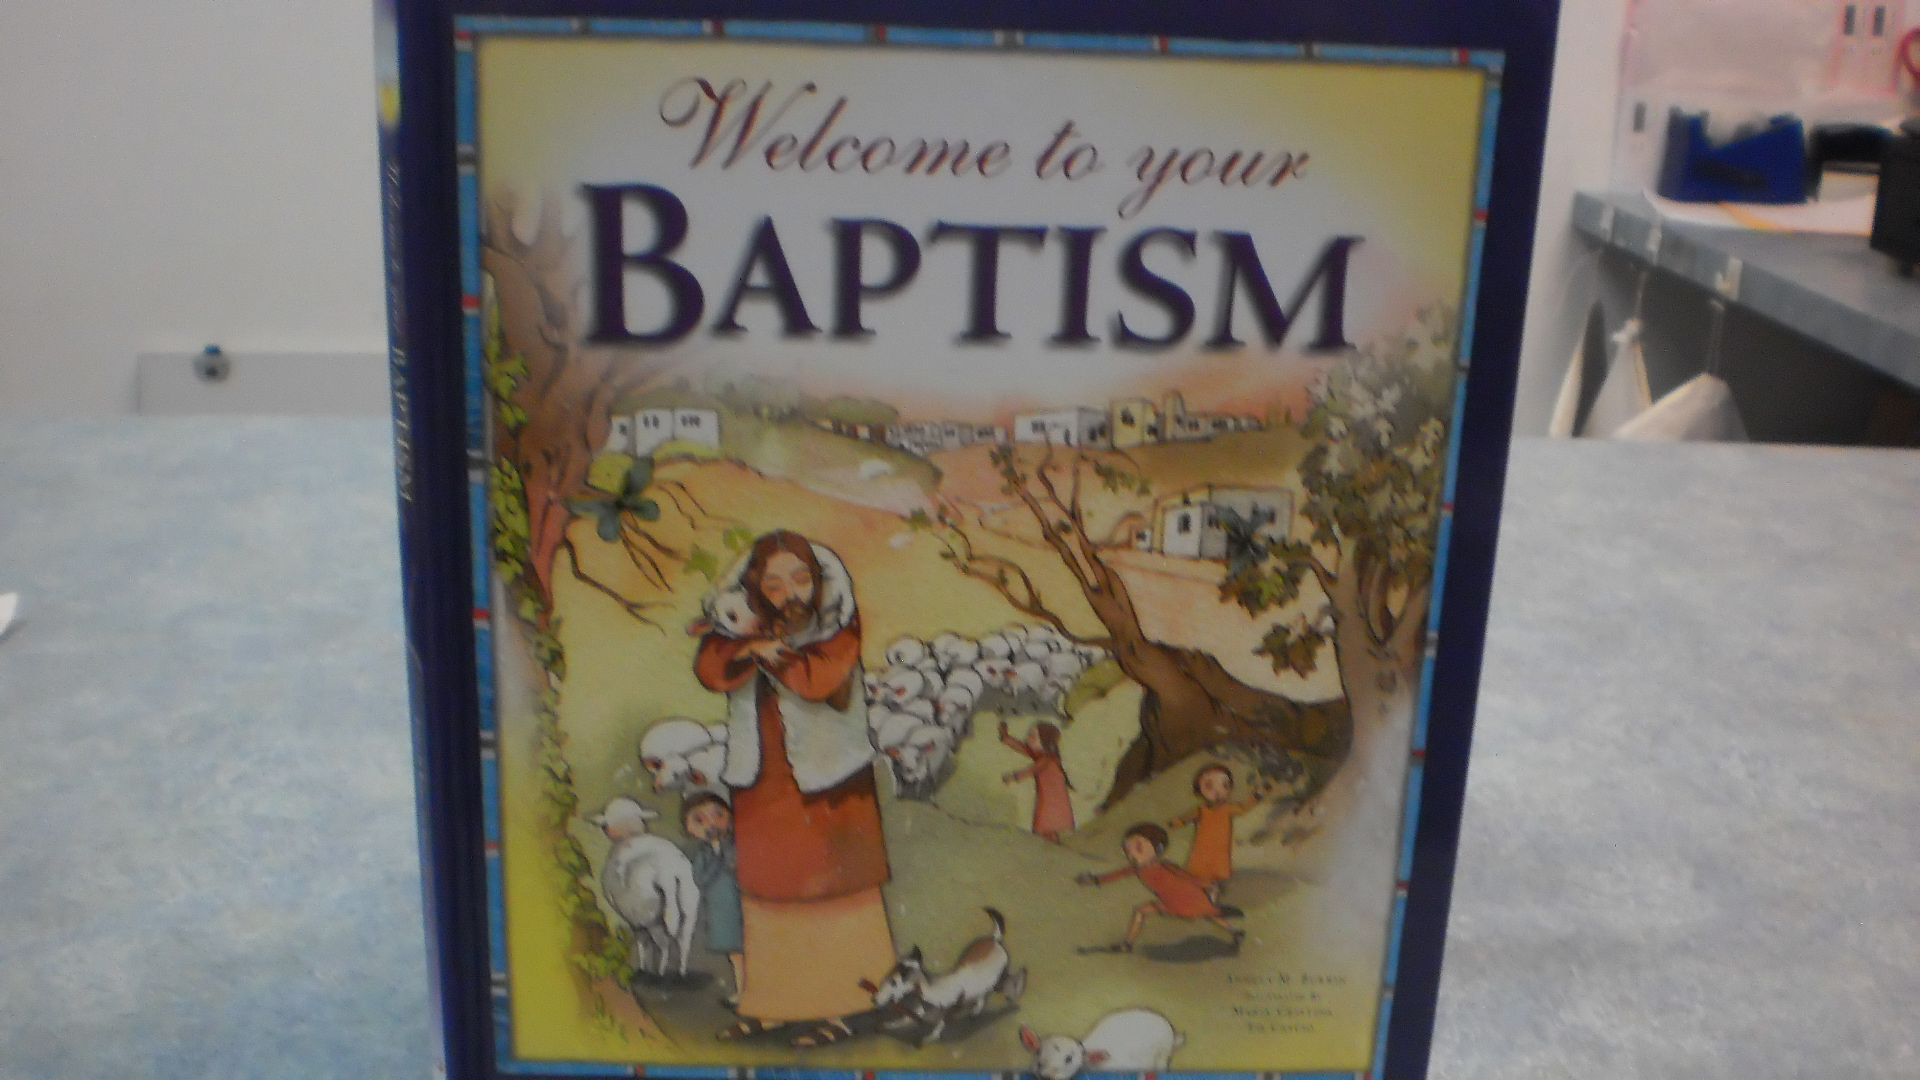 Welcome to your Baptism